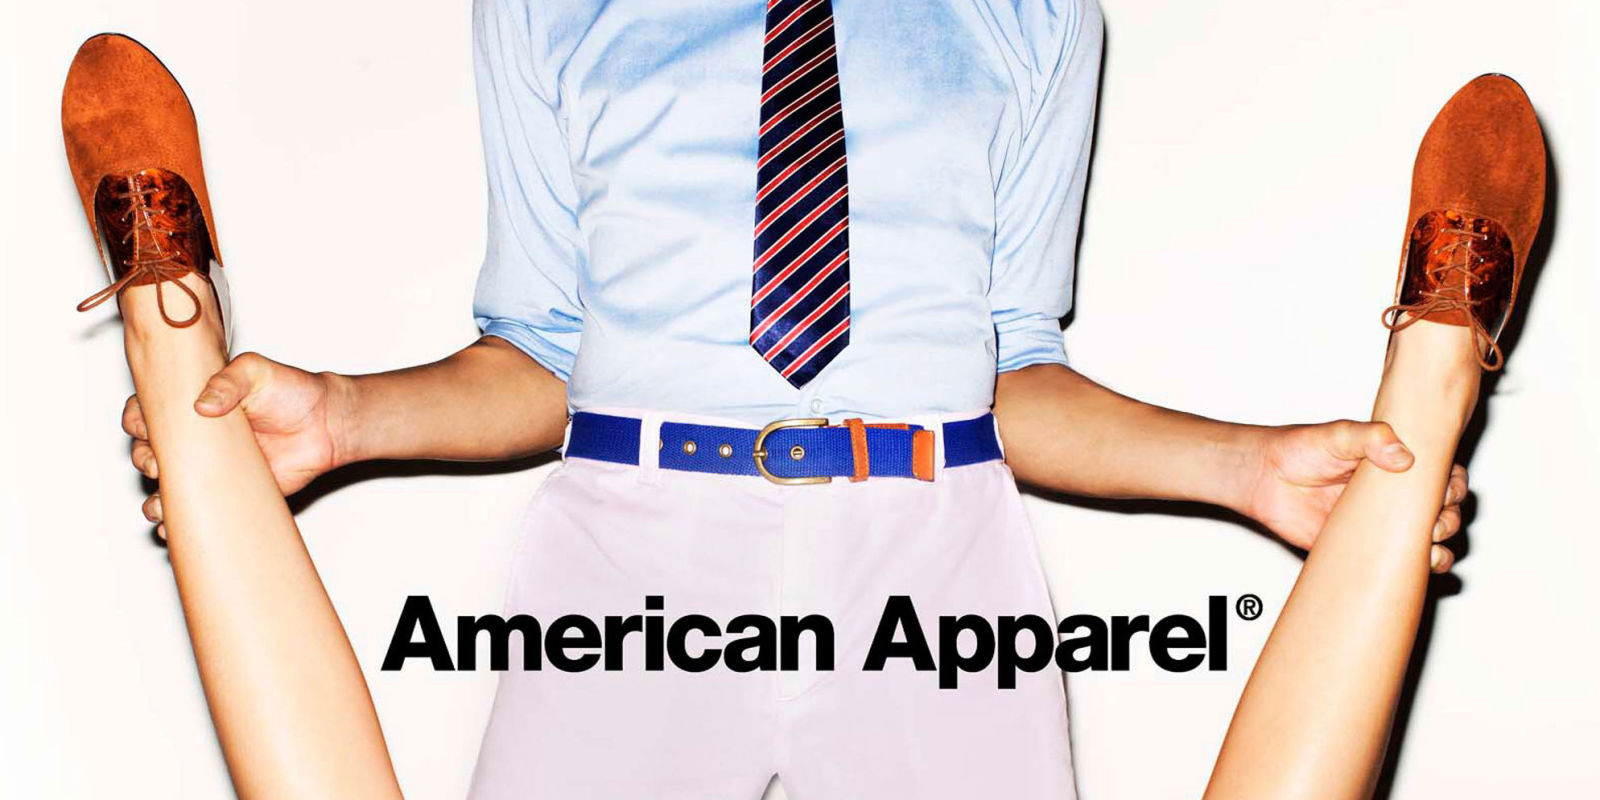 an analysis of an online advertisement for american apparel